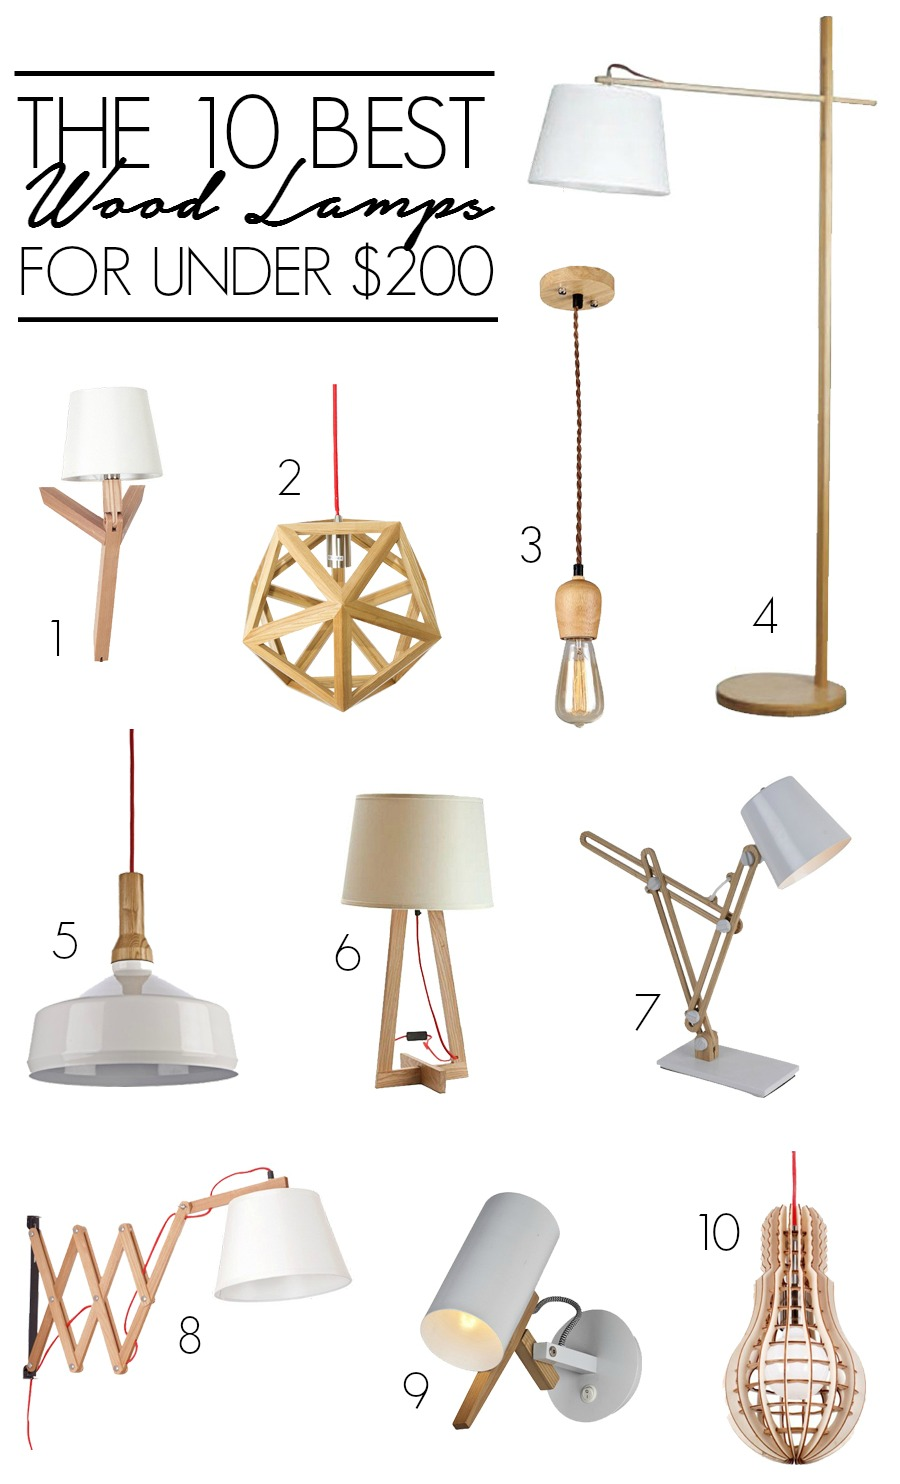 The 10 Best Wood Lamps for Under $200